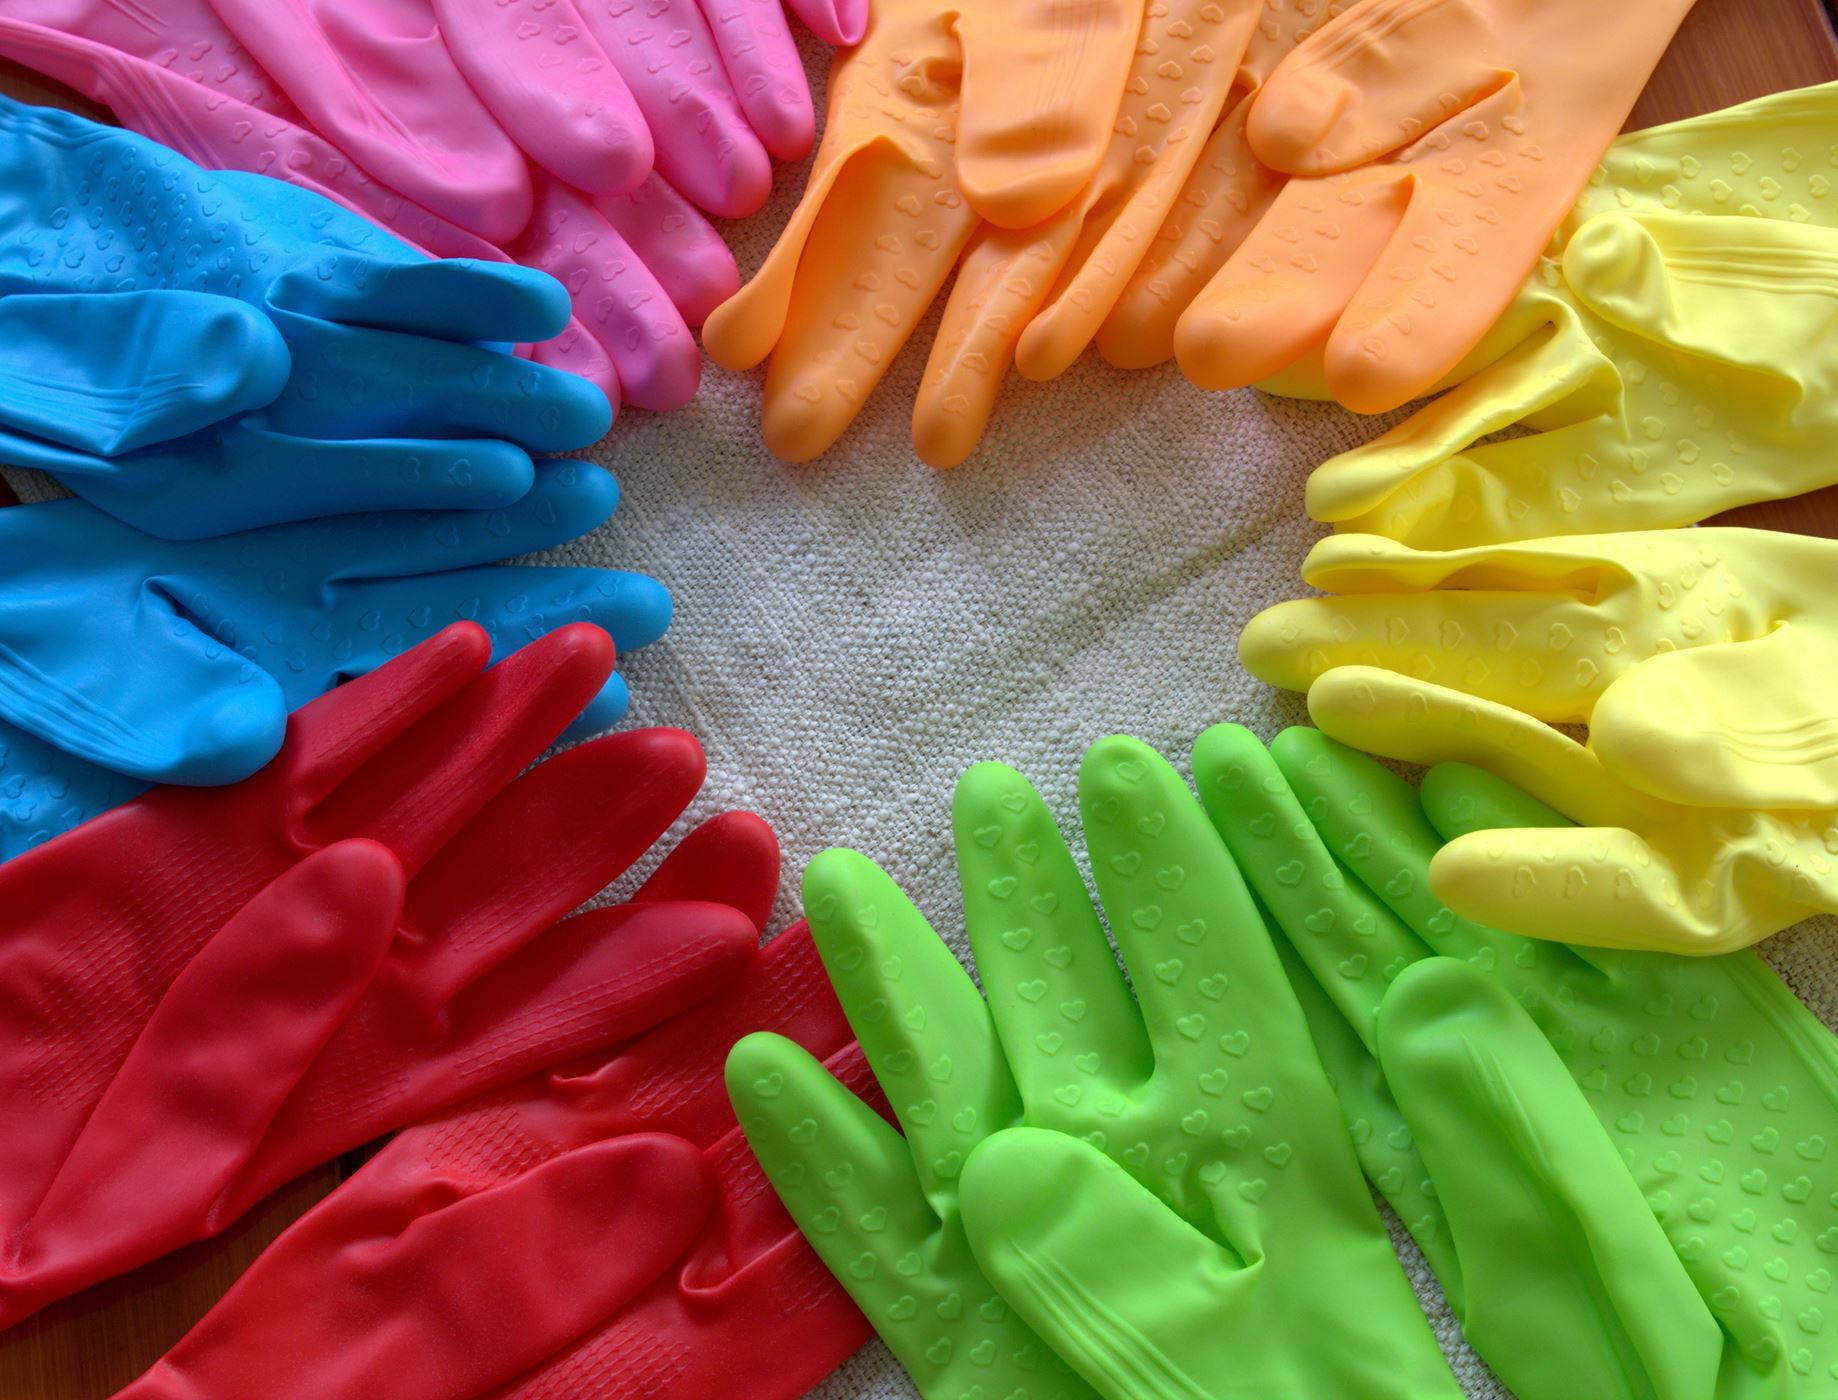 colourful rubber gloves